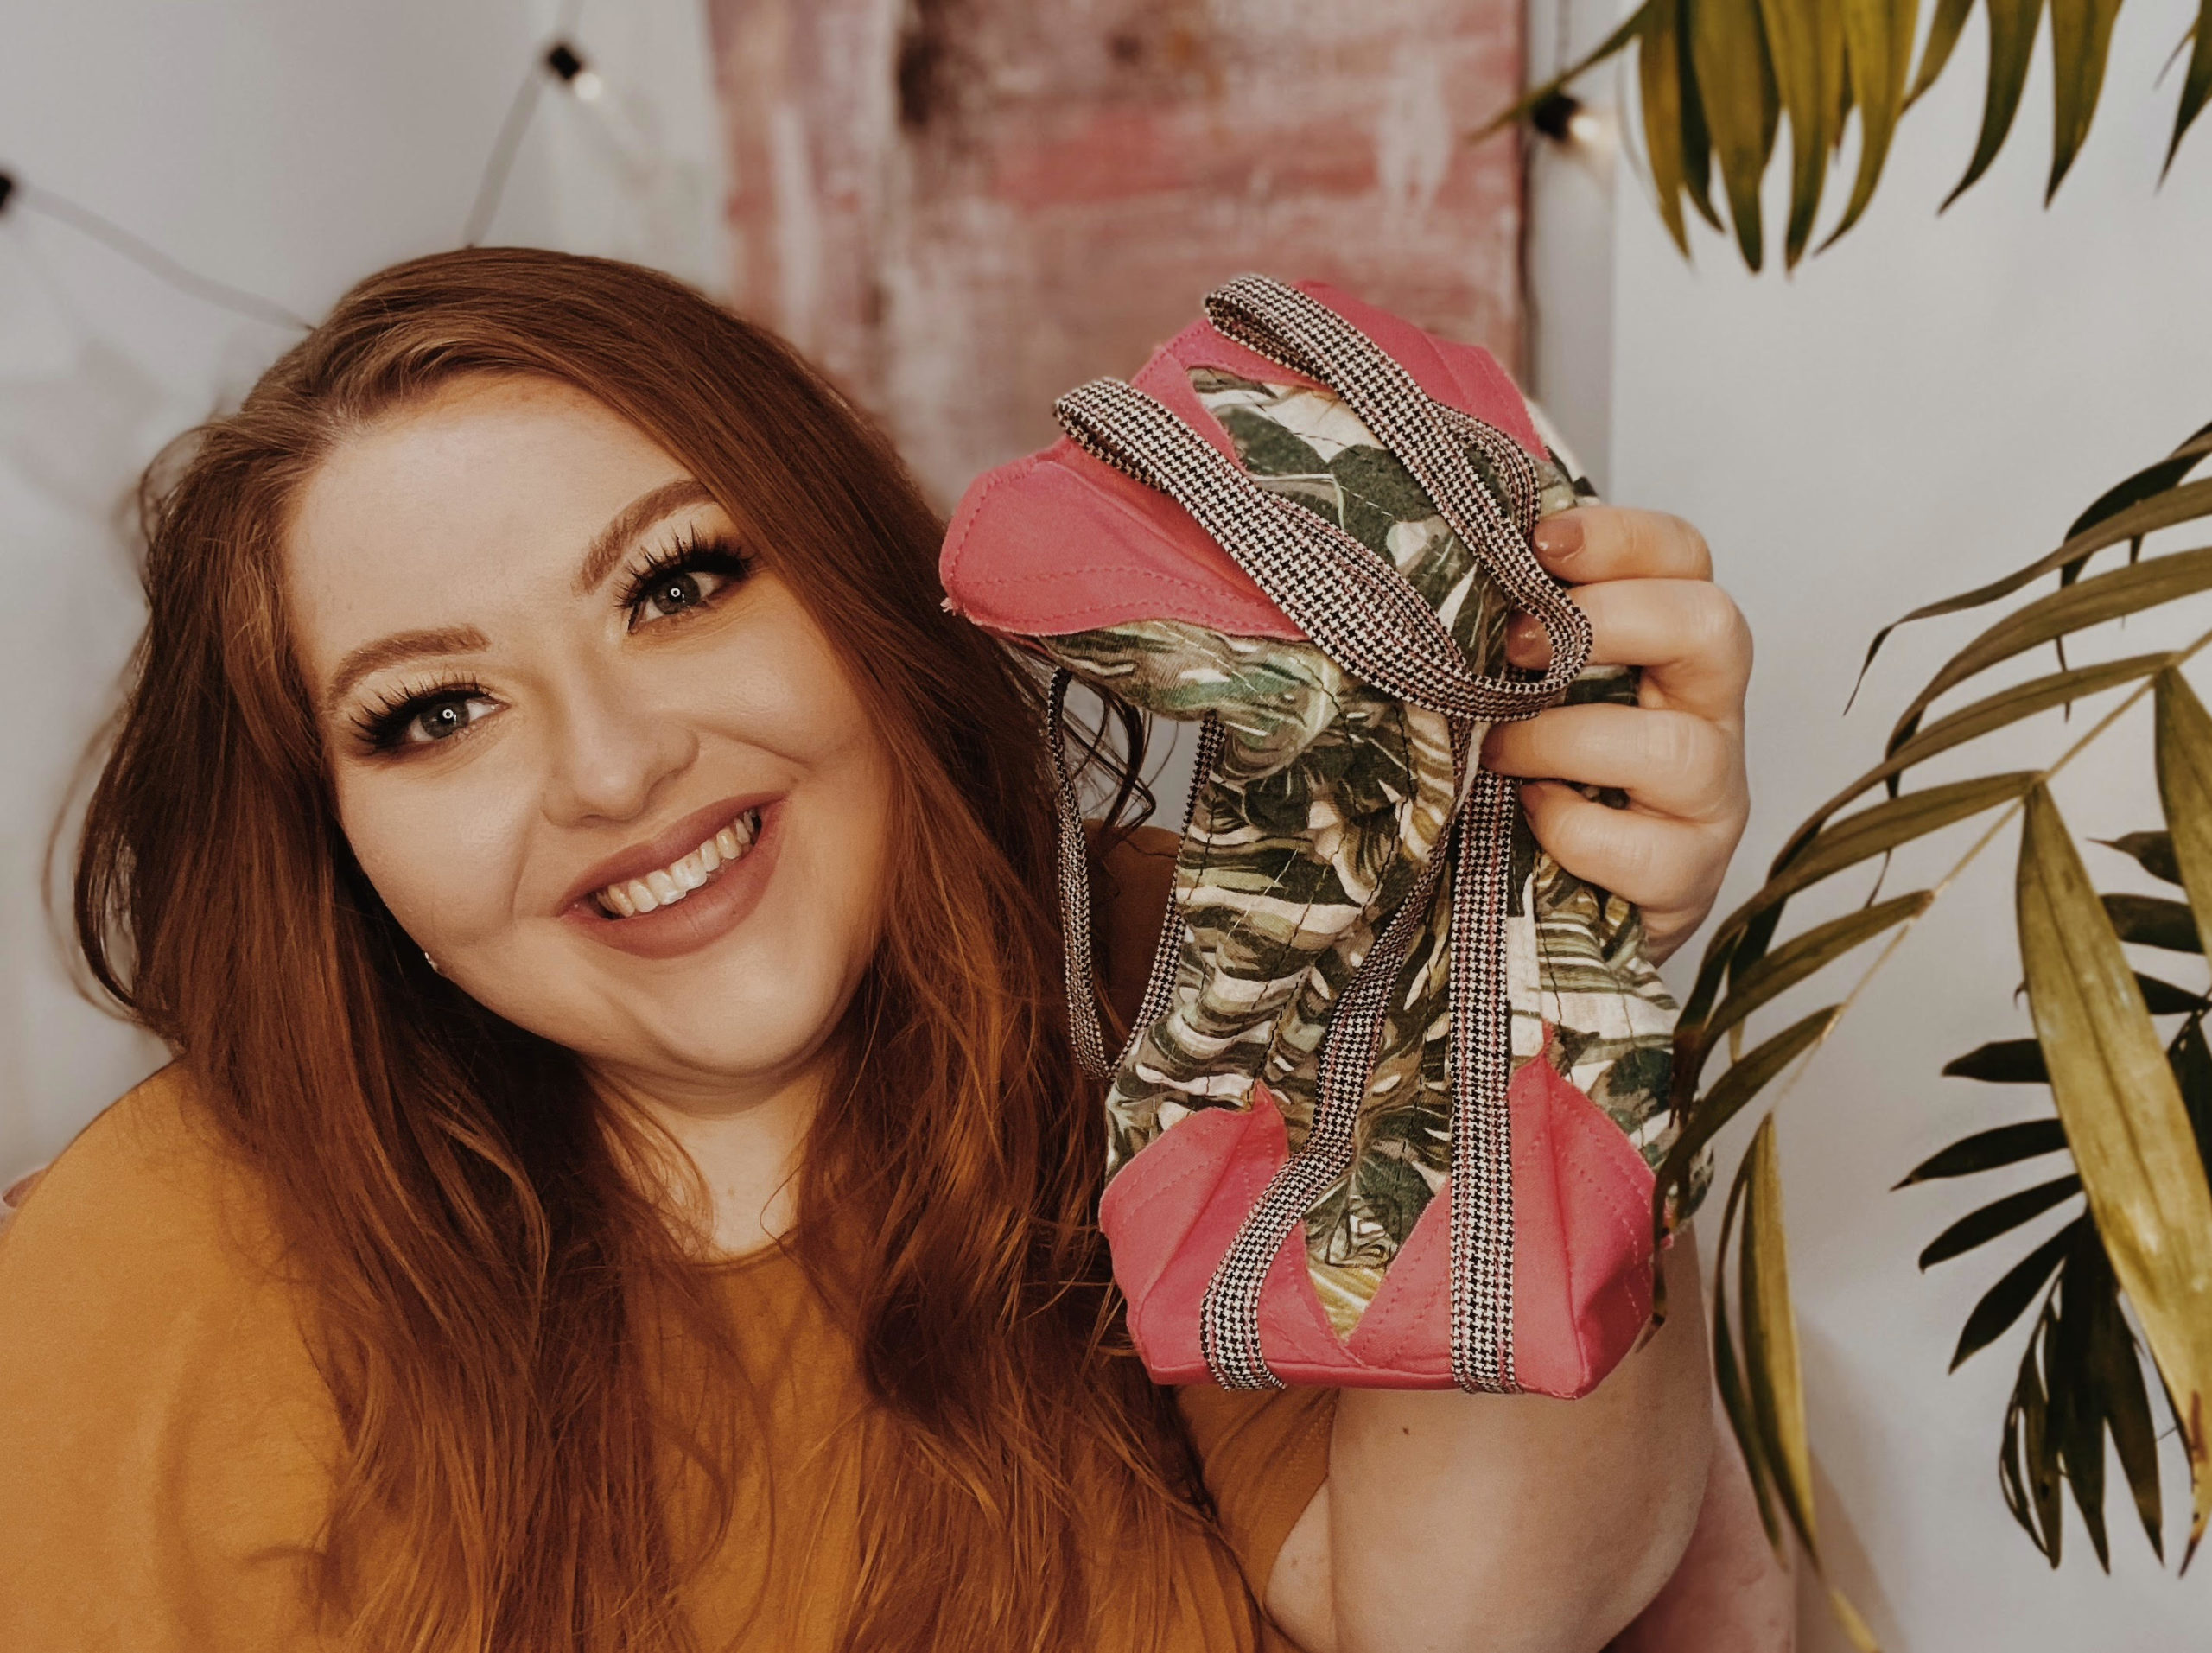 Image of Abi smiling as she holds up one of the Esperanza Wrap gift bags